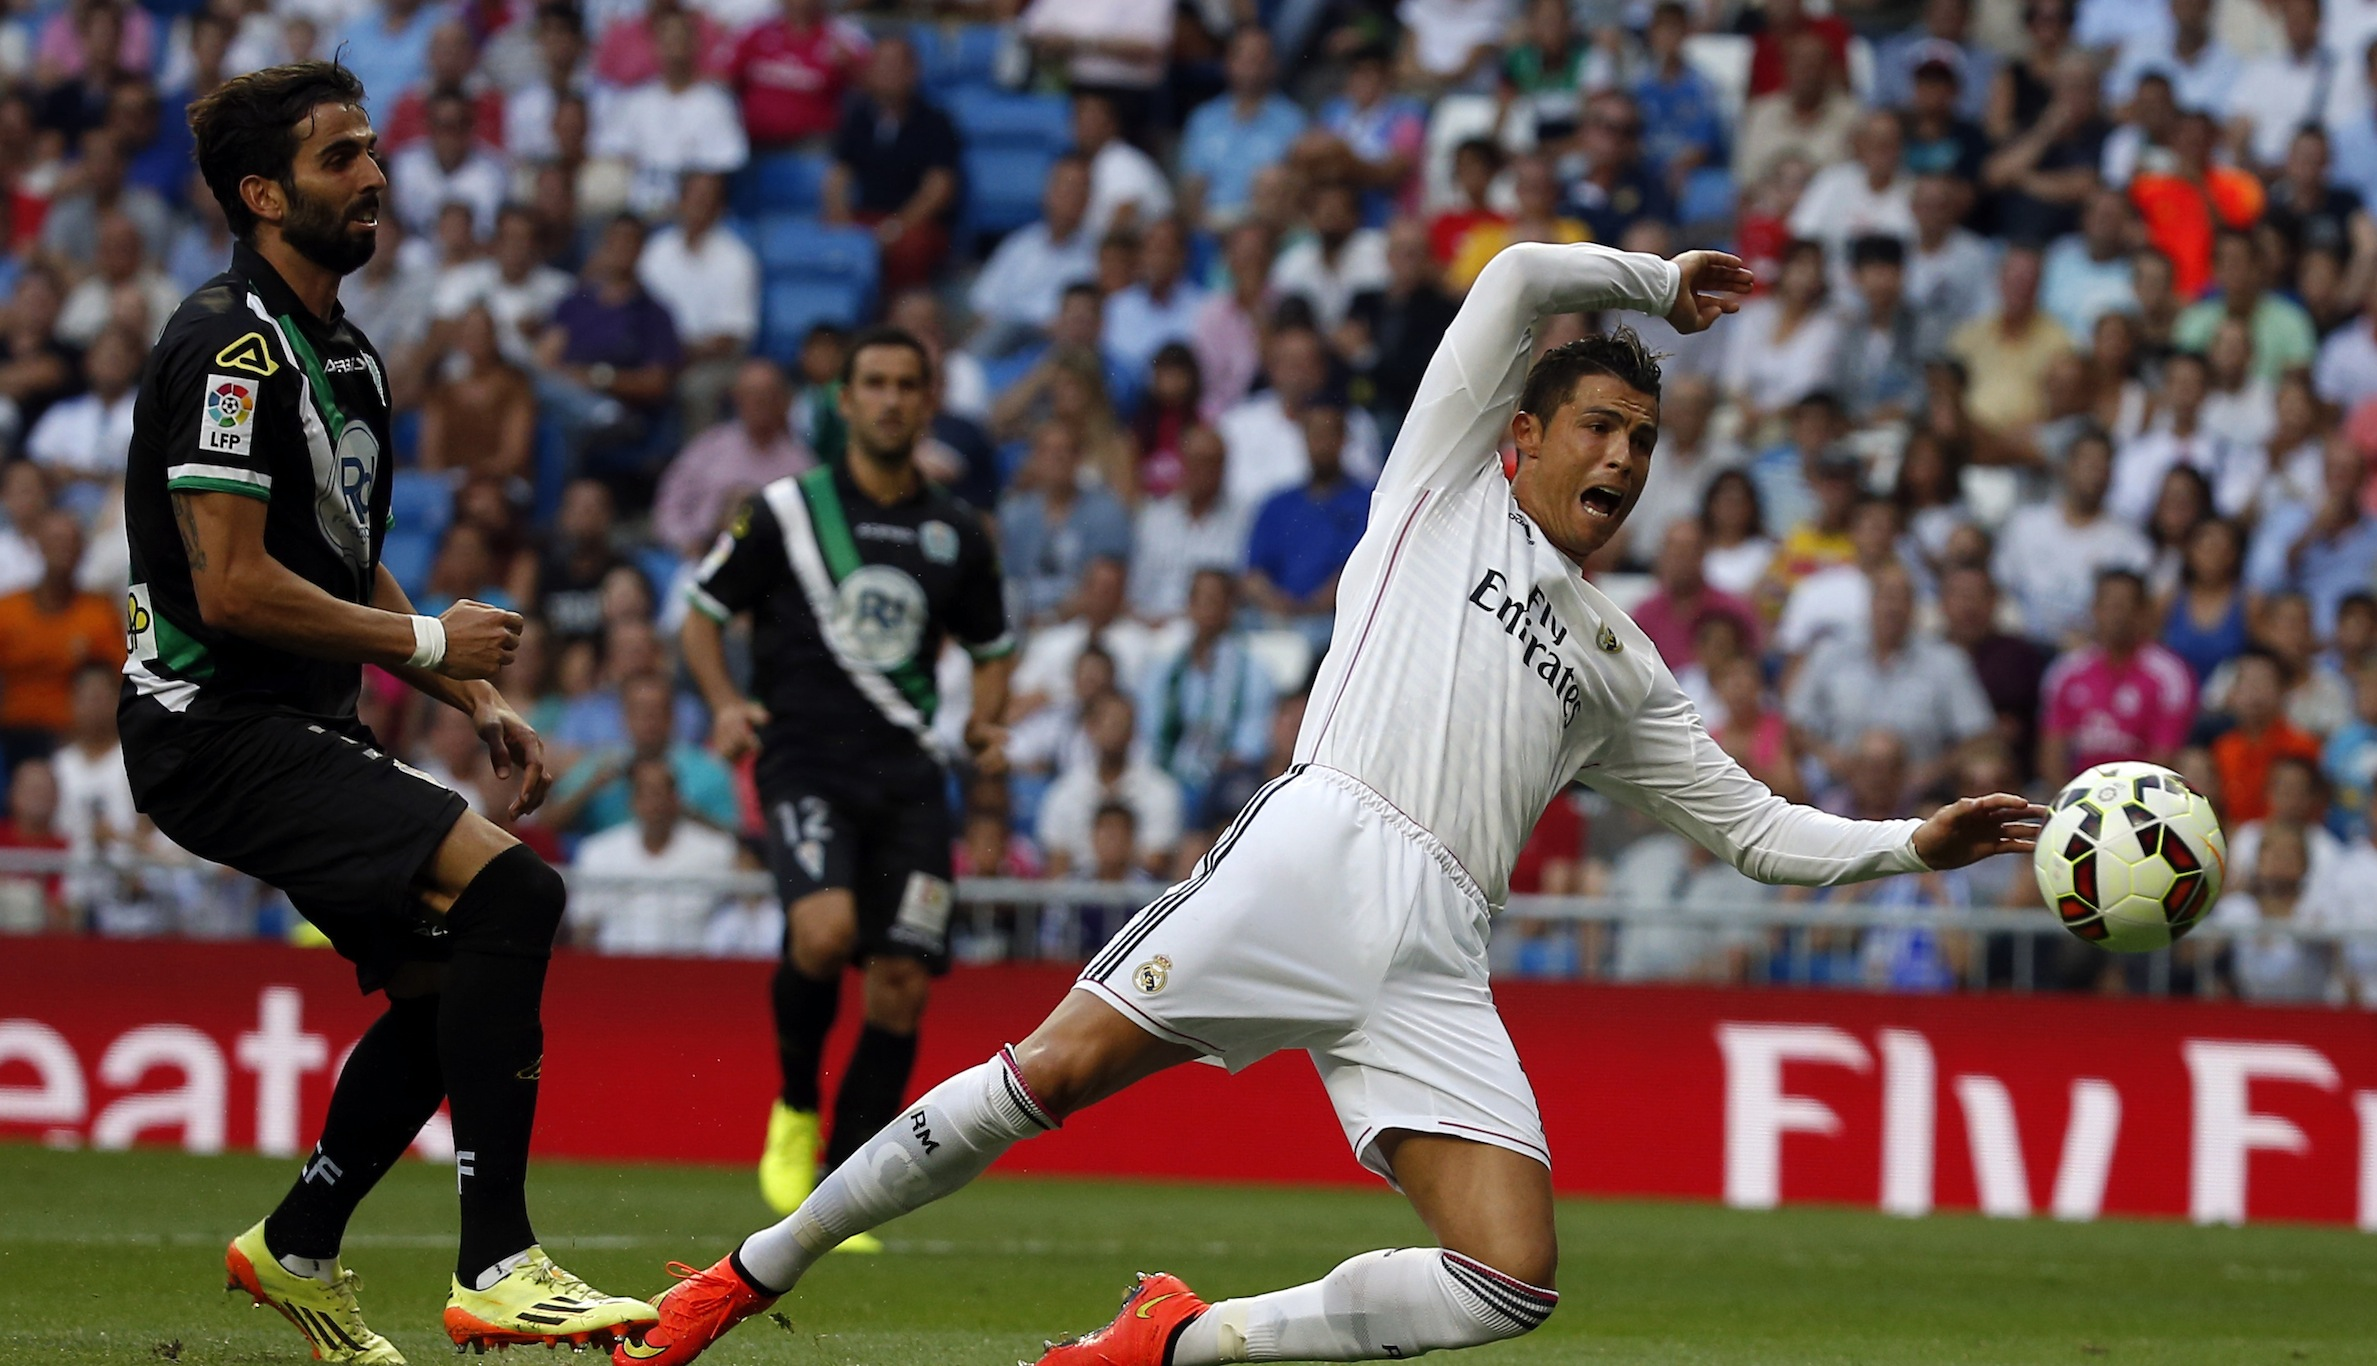 Real Madrid's Cristiano Ronaldo (R) falls inside the penalty area after being pushed by Cordoba's Angel Crespo during their Spanish first division soccer match at Santiago Bernabeu stadium in Madrid August 25, 2014.  REUTERS/Sergio Perez (SPAIN - Tags: SPORT SOCCER) - RTR43P37